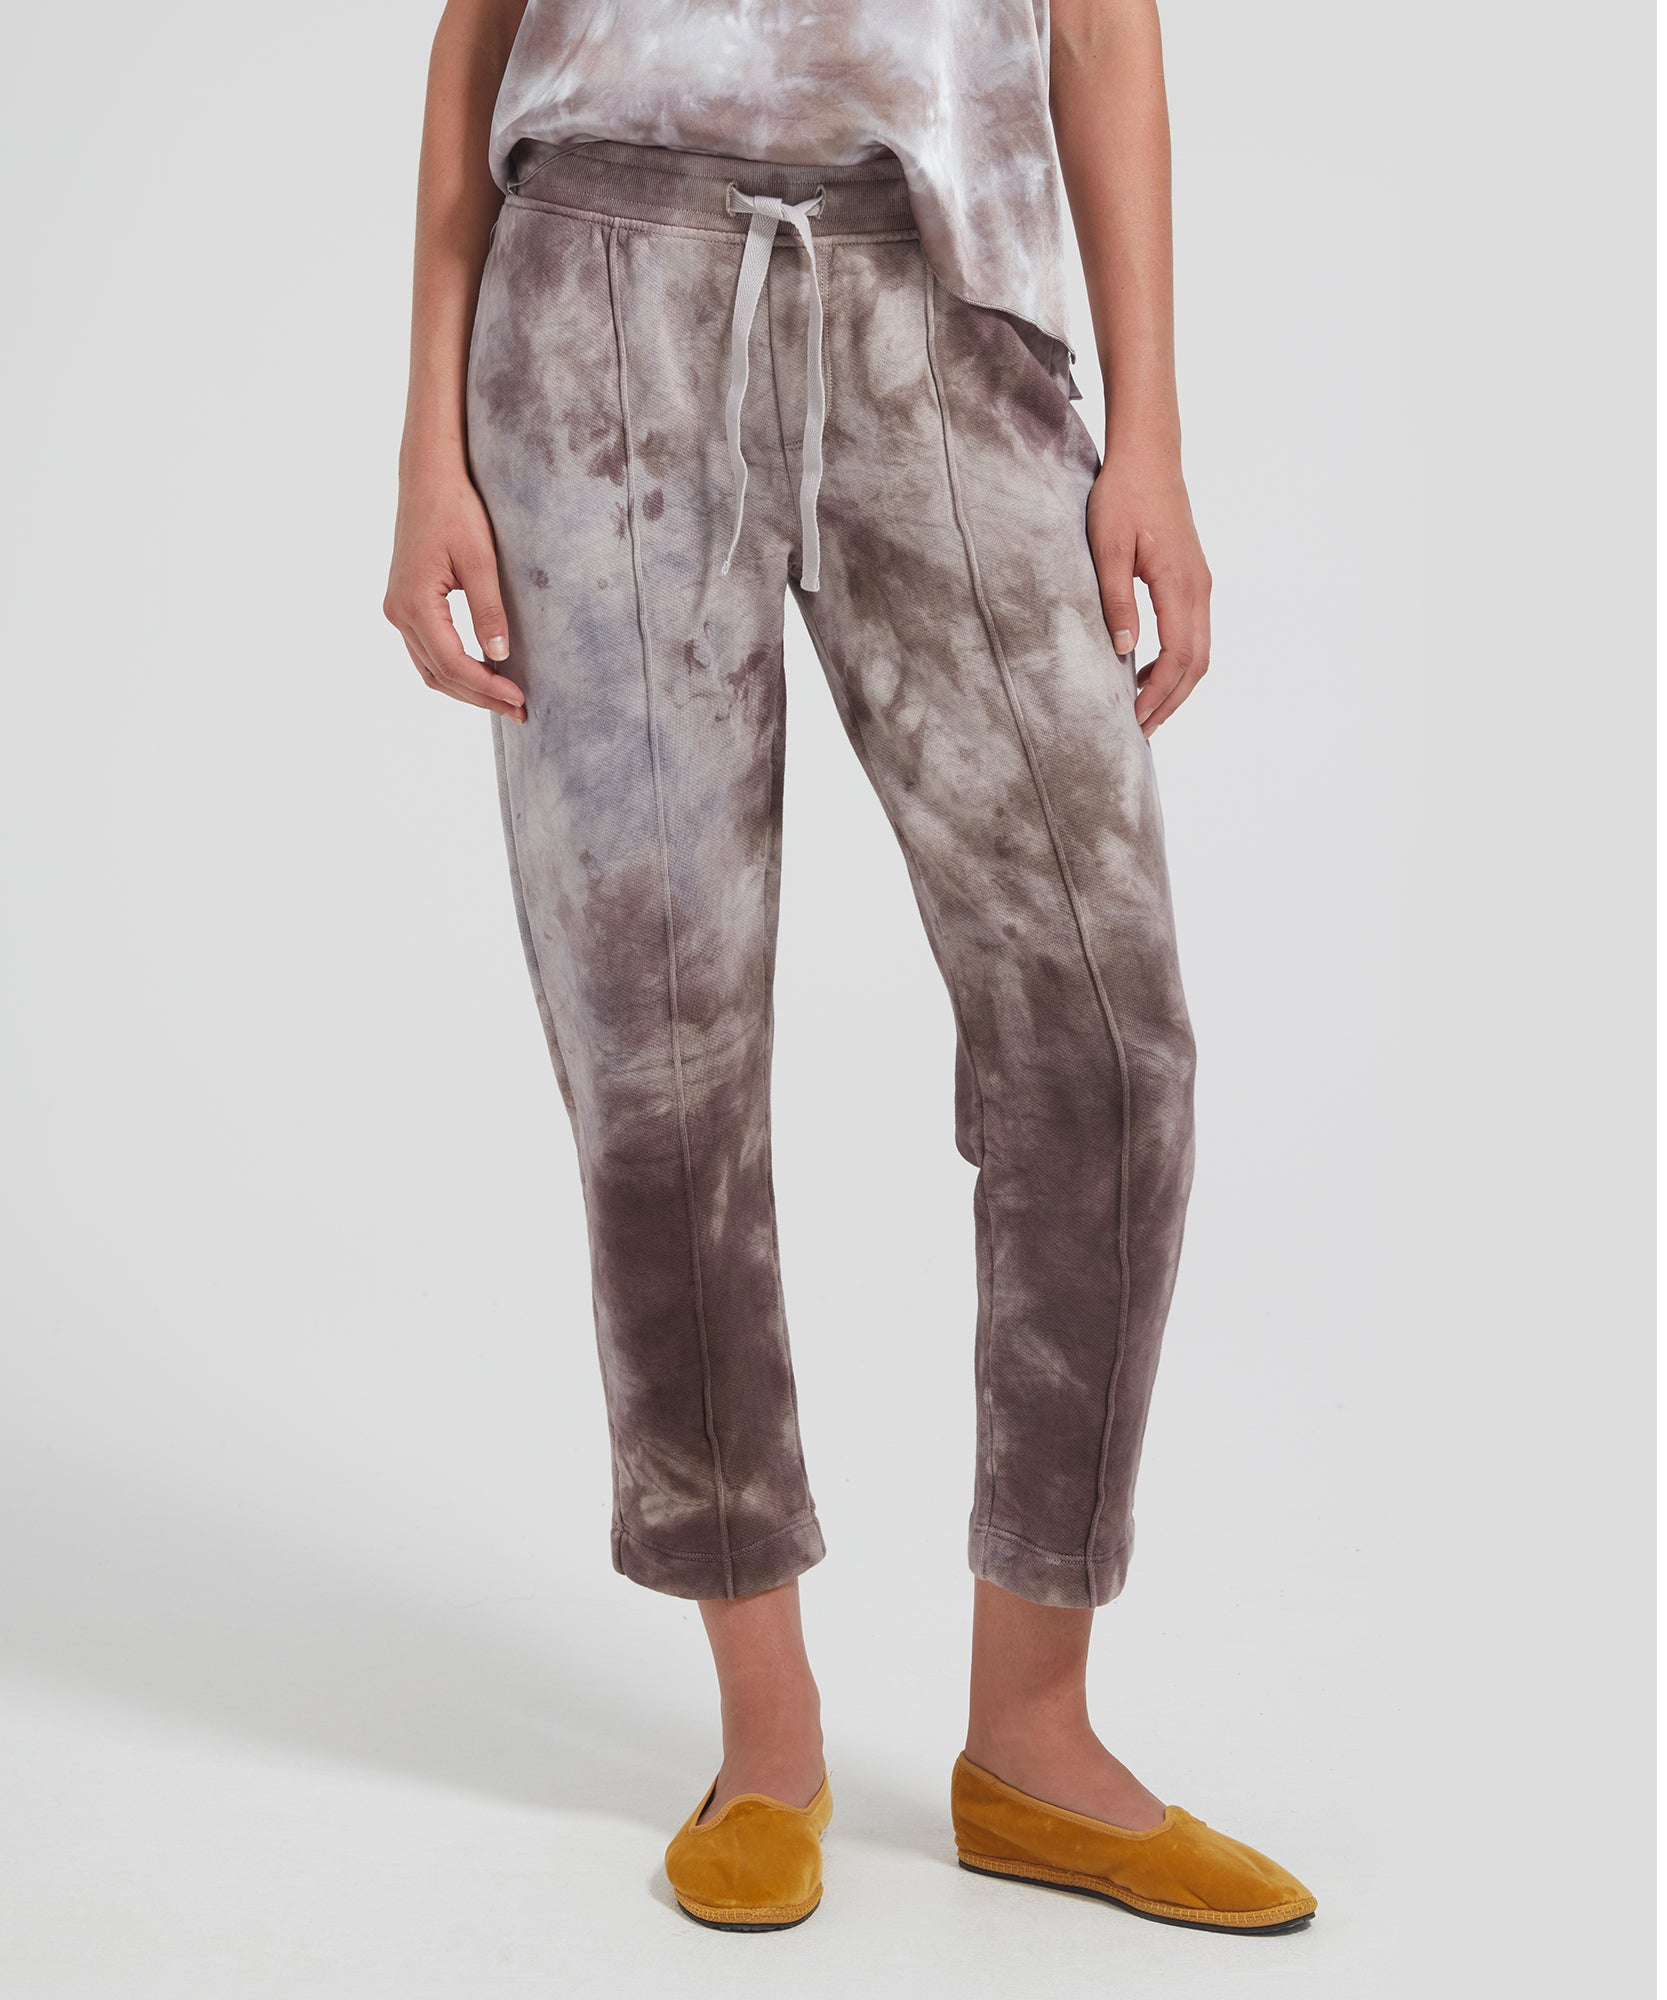 ATM Tie Dye French Terry Pull-On Cropped Pants